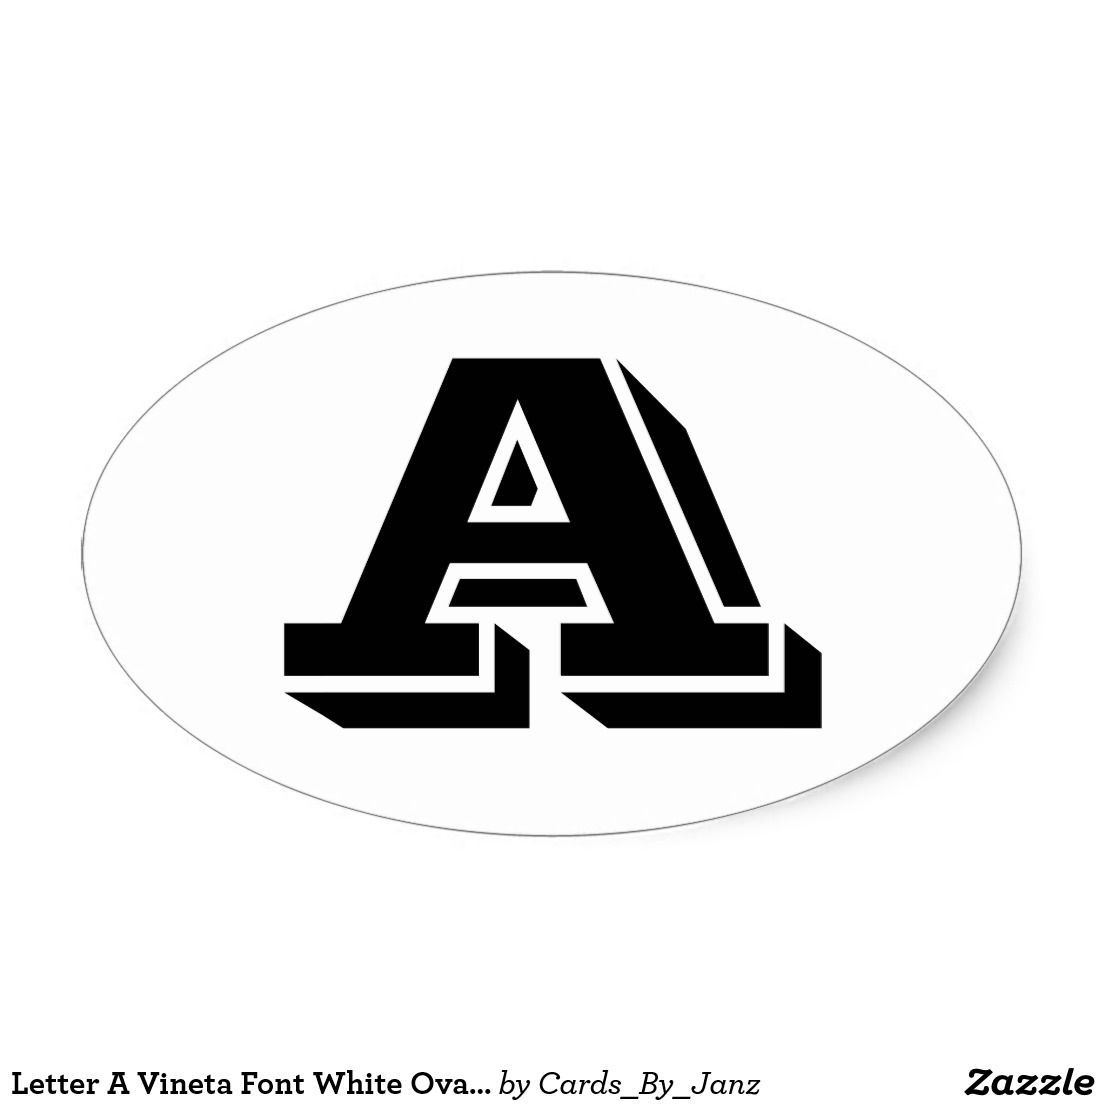 Letter A Vineta Font White Oval Stickers by Janz